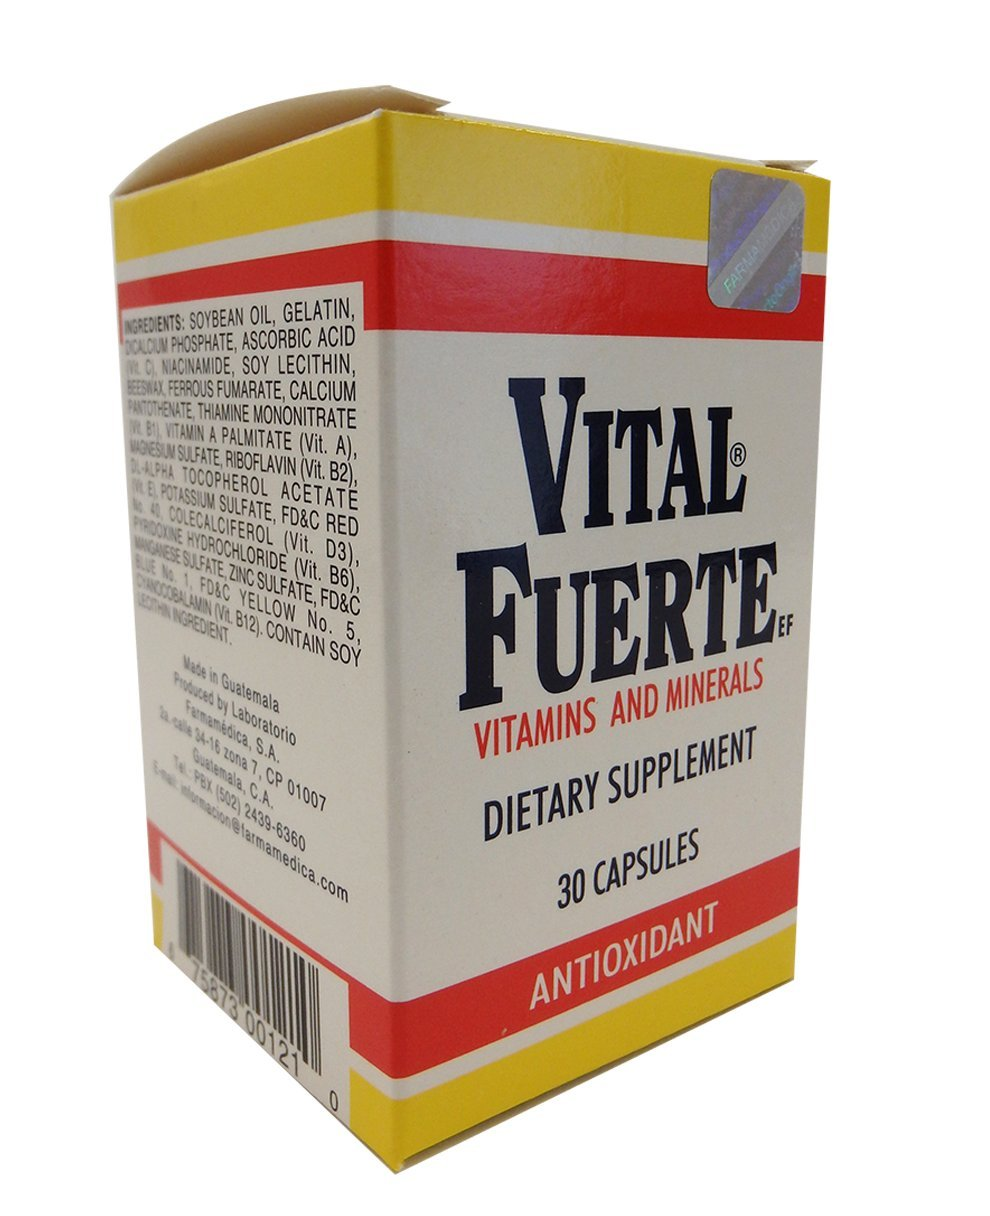 Amazon.com: Vital Fuerte Vitamins Capsules 30.0 CT: Health & Personal Care